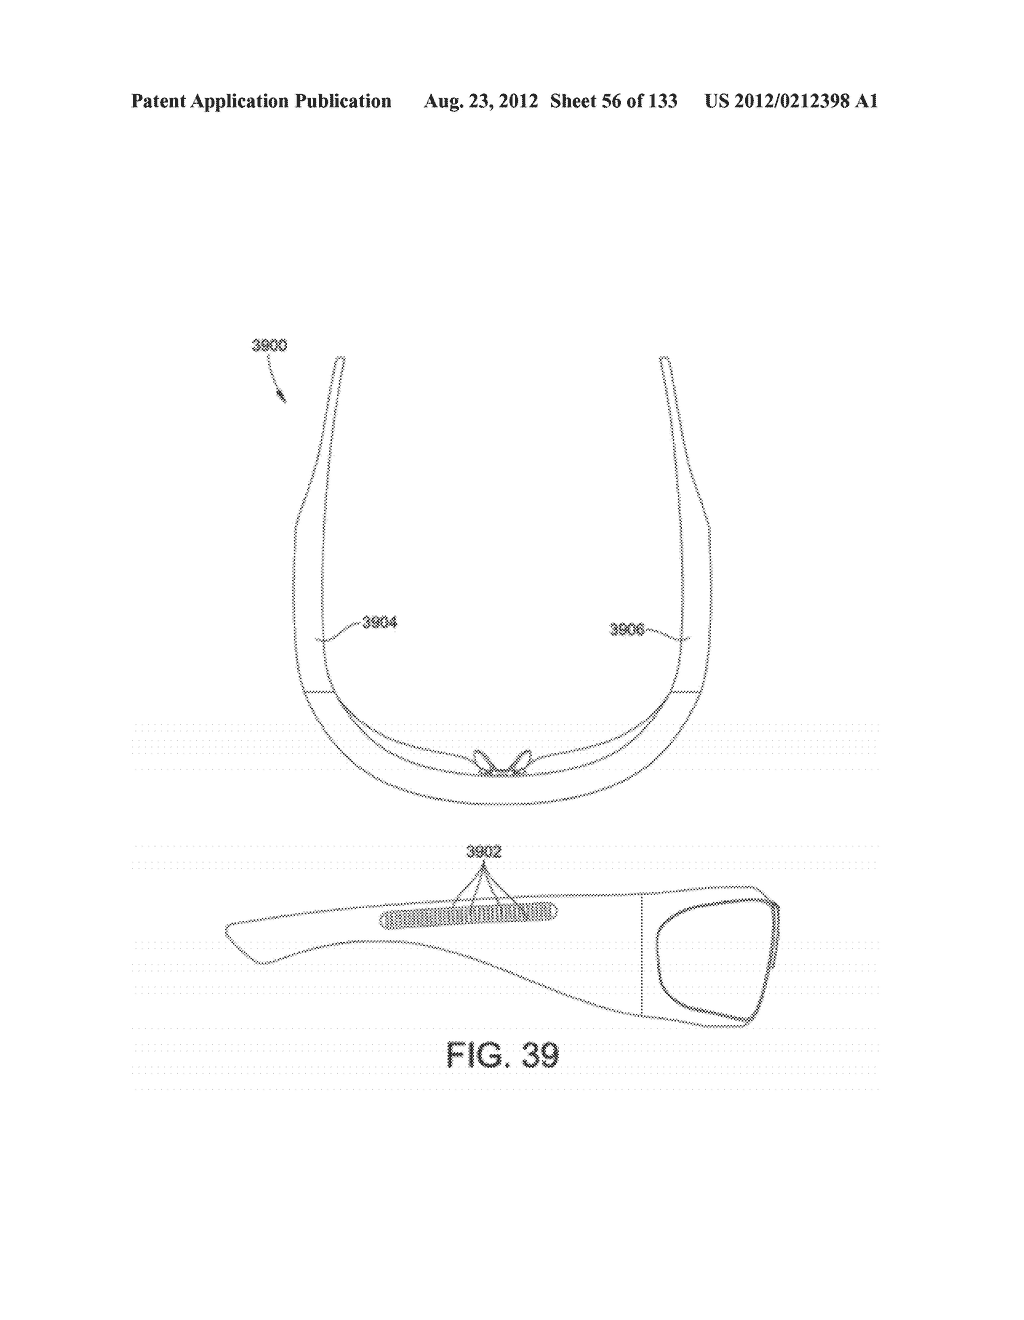 SEE-THROUGH NEAR-EYE DISPLAY GLASSES INCLUDING A PARTIALLY REFLECTIVE,     PARTIALLY TRANSMITTING OPTICAL ELEMENT - diagram, schematic, and image 57